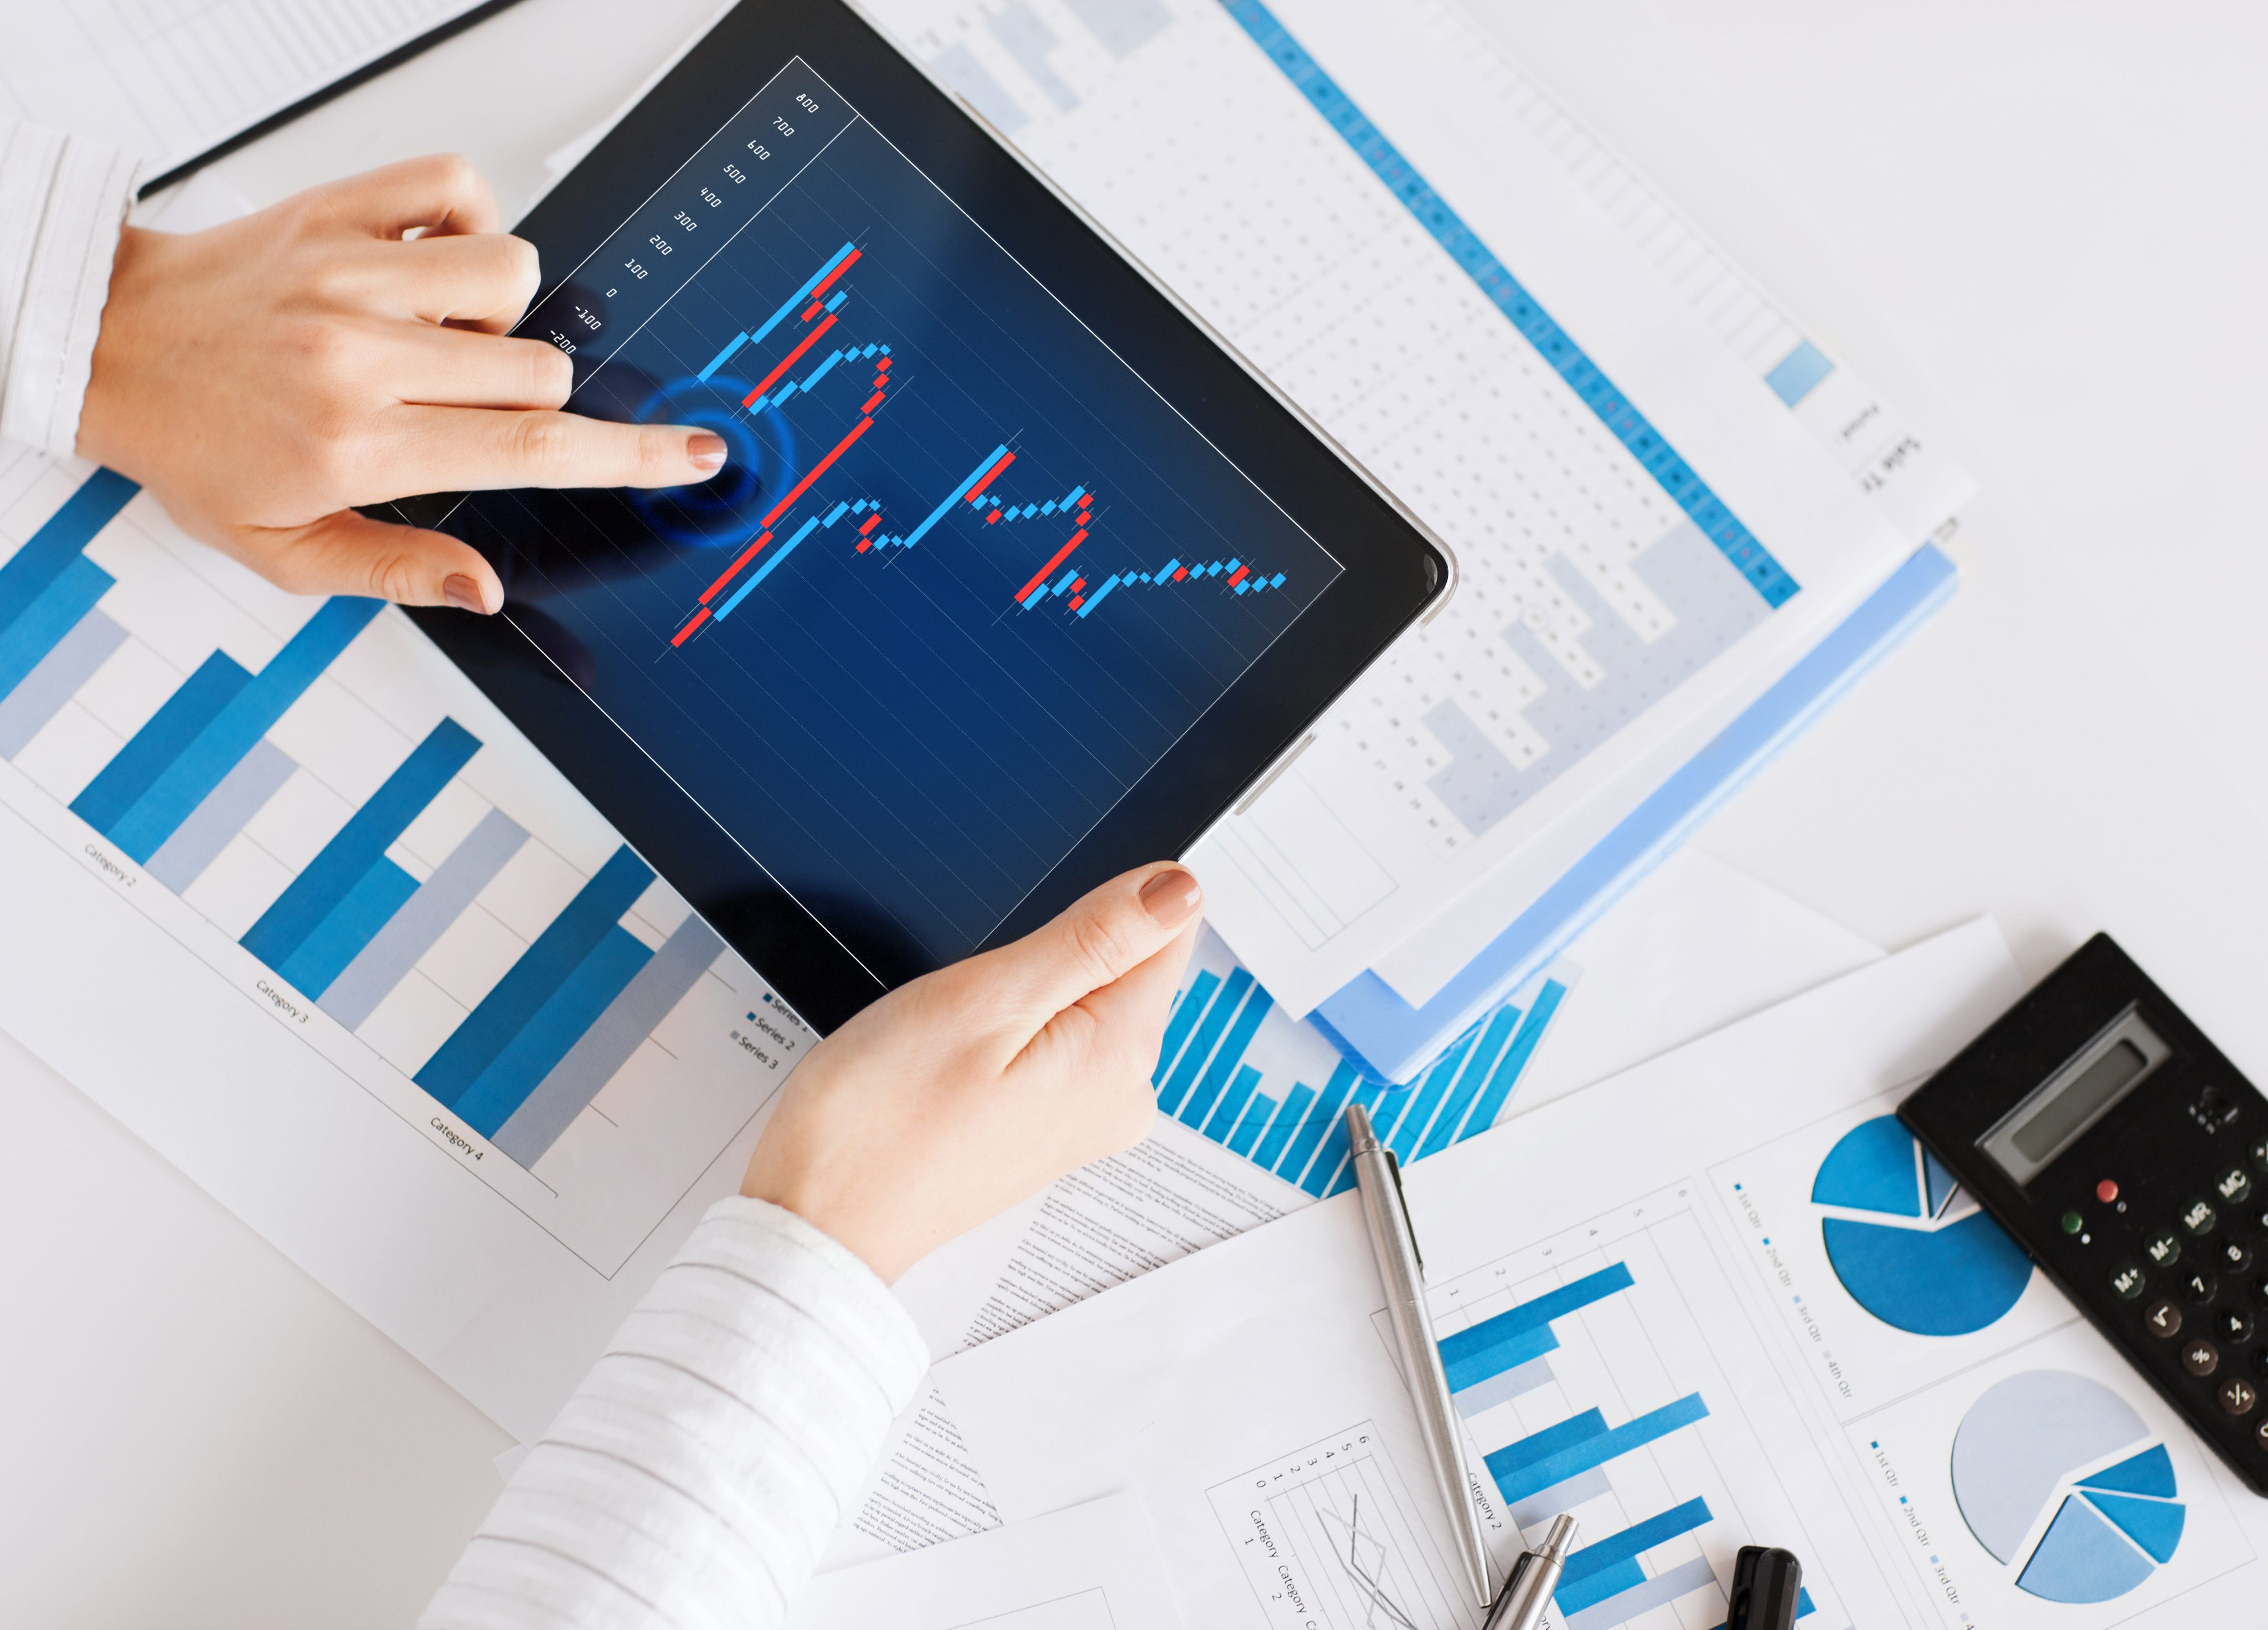 Forex News About DailyForex App - Daily News & Analysis on Your Mobile Device - blogger.com